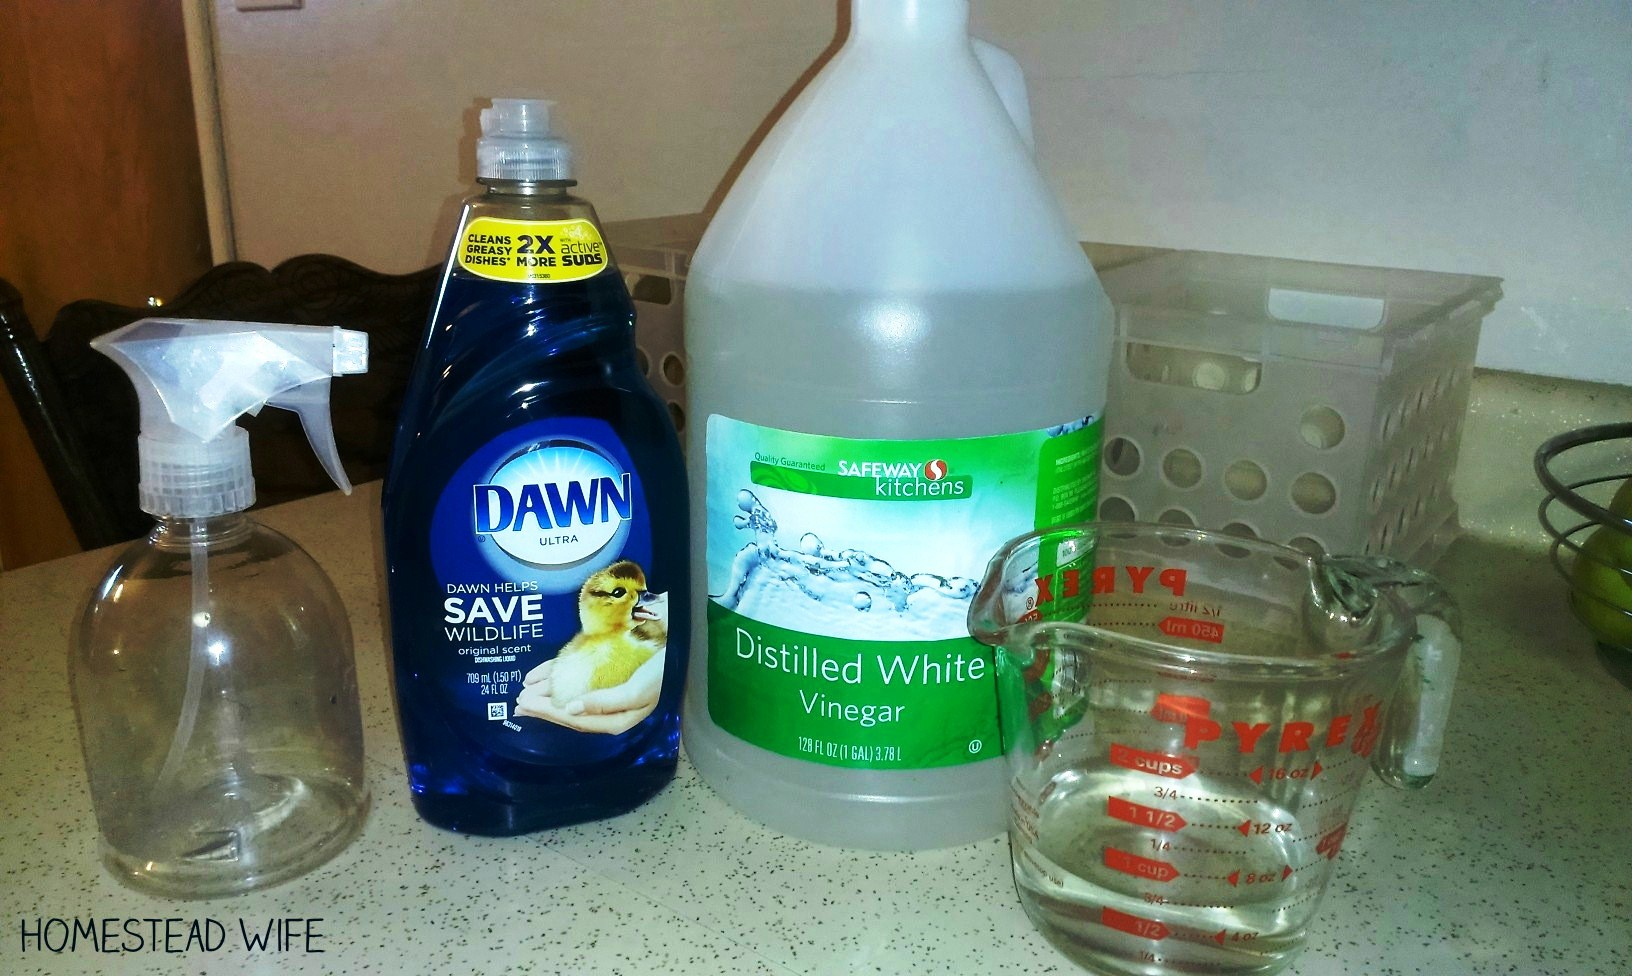 One Of The Ways I Save Money Is By Not Buying Cleaning Products And  Homemaking Them Instead. Itu0027s Not Only Less Expensive, But Often Itu0027s  Better For Your ...